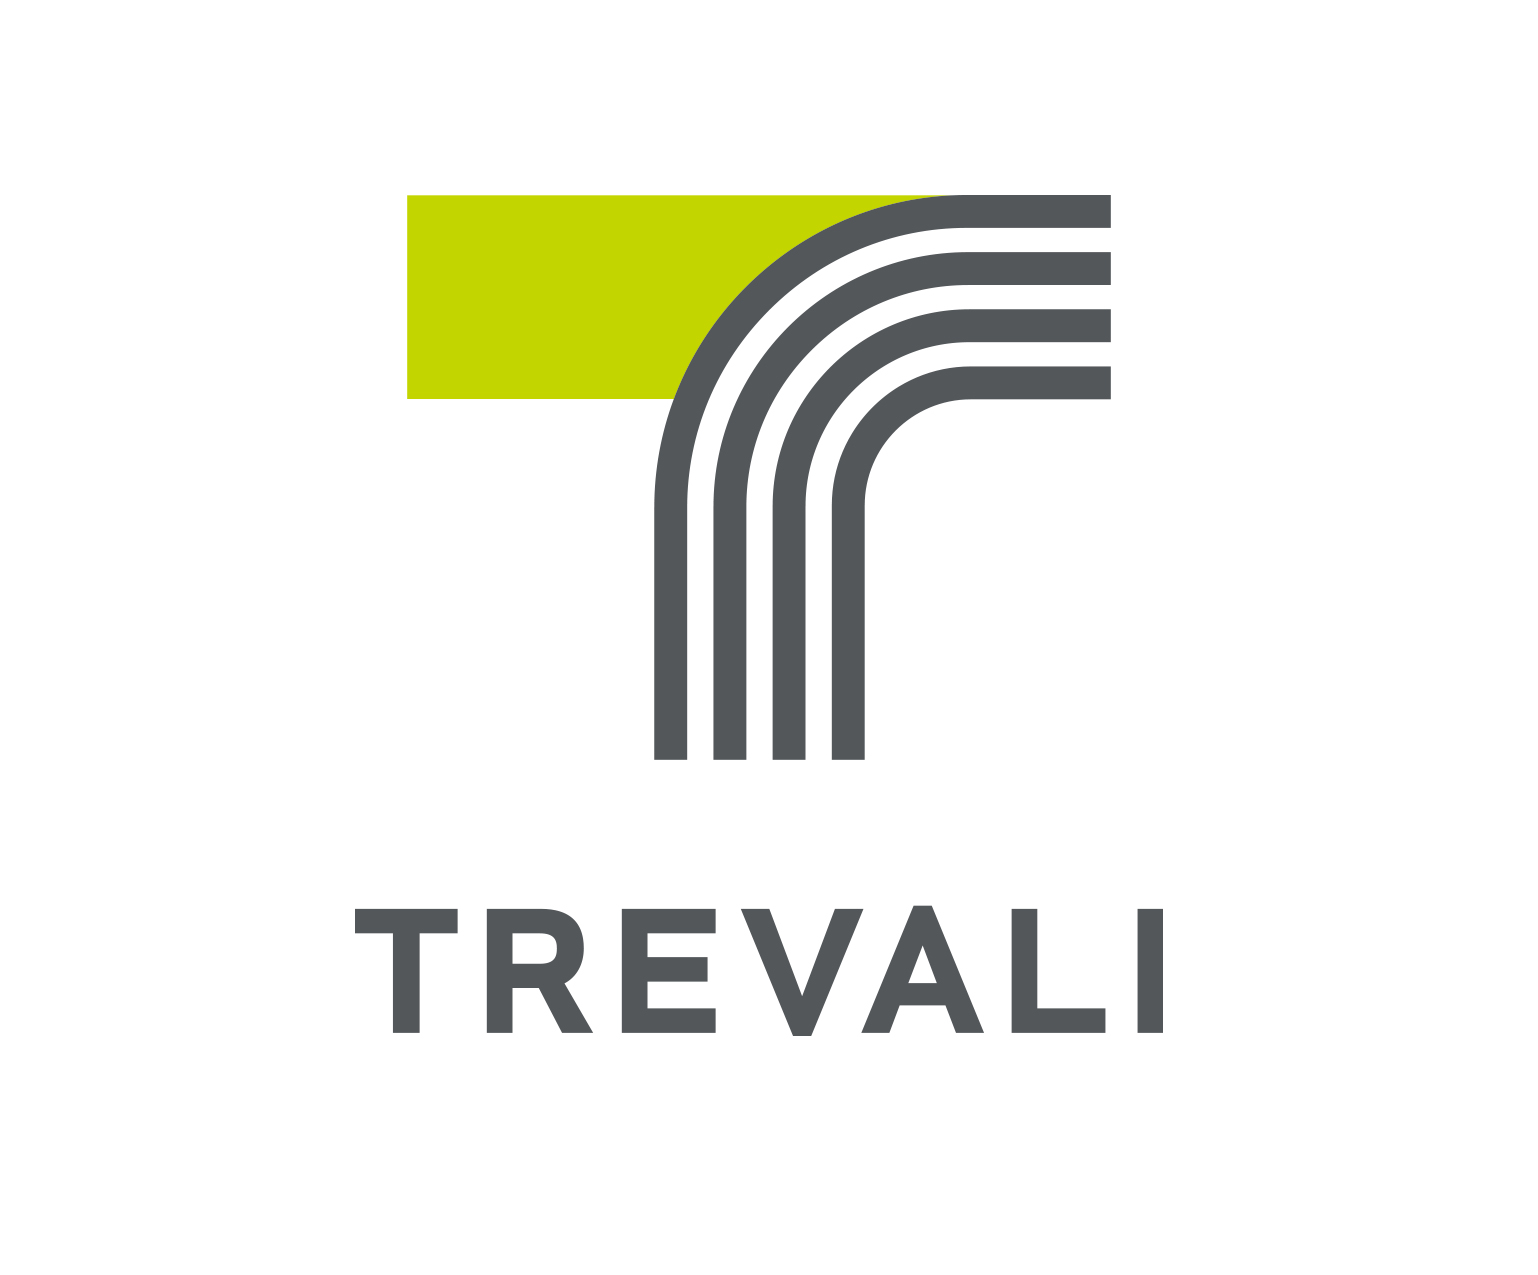 Trevali Confirms Positive COVID-19 Cases at Santander and Temporarily Suspends Operations